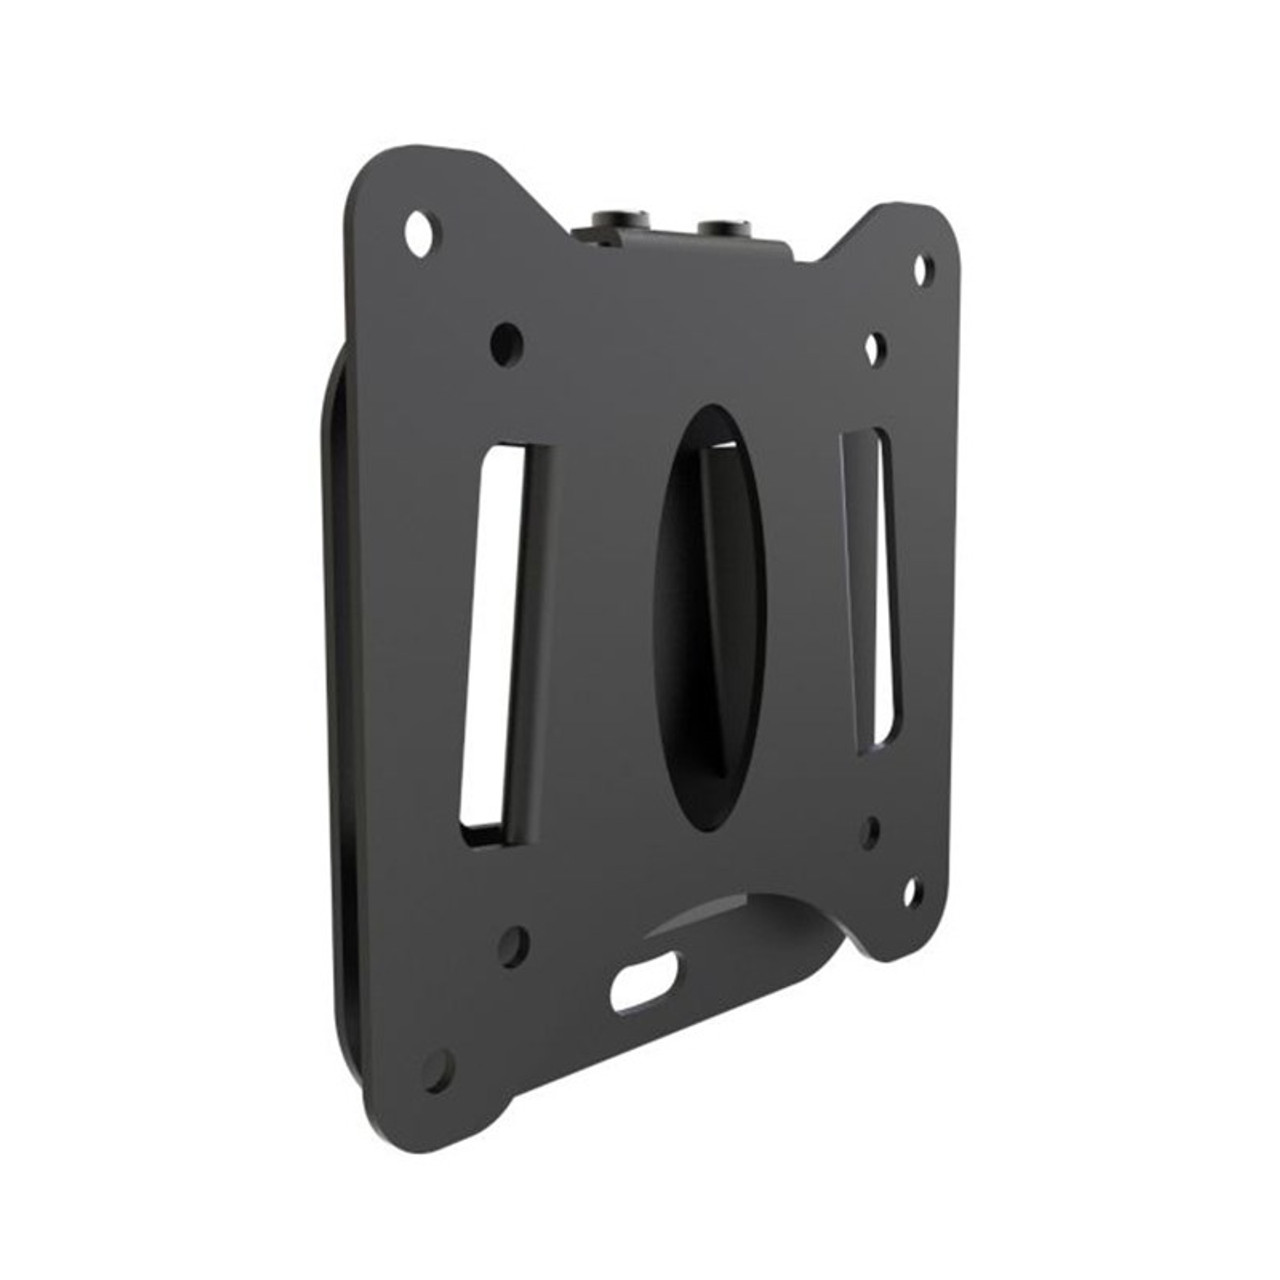 Image for Atdec AD-30100-WF Low Profile Fixed Wall Mount - Black CX Computer Superstore